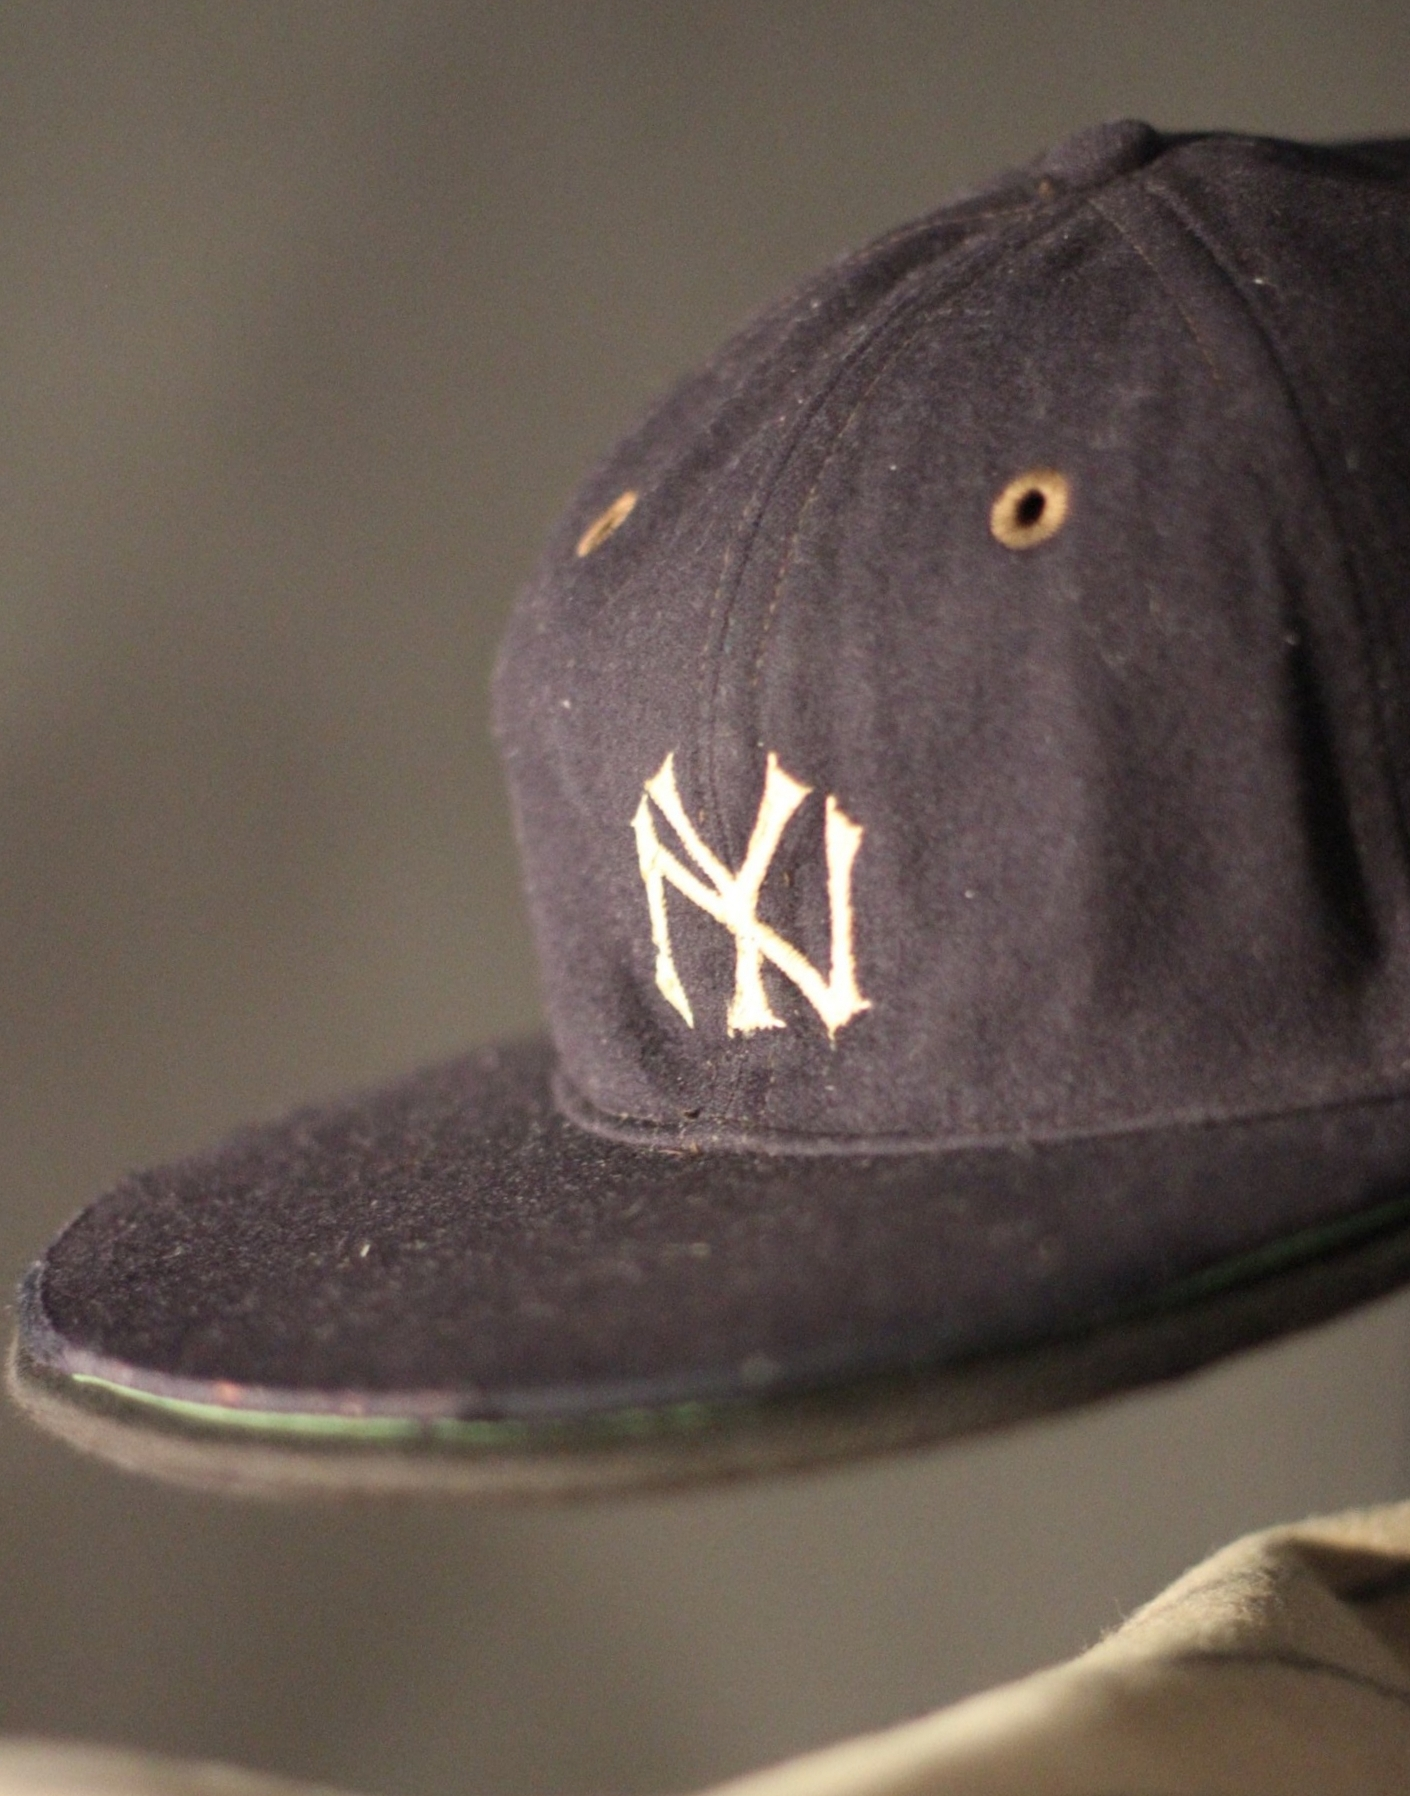 Babe Ruth's hat.